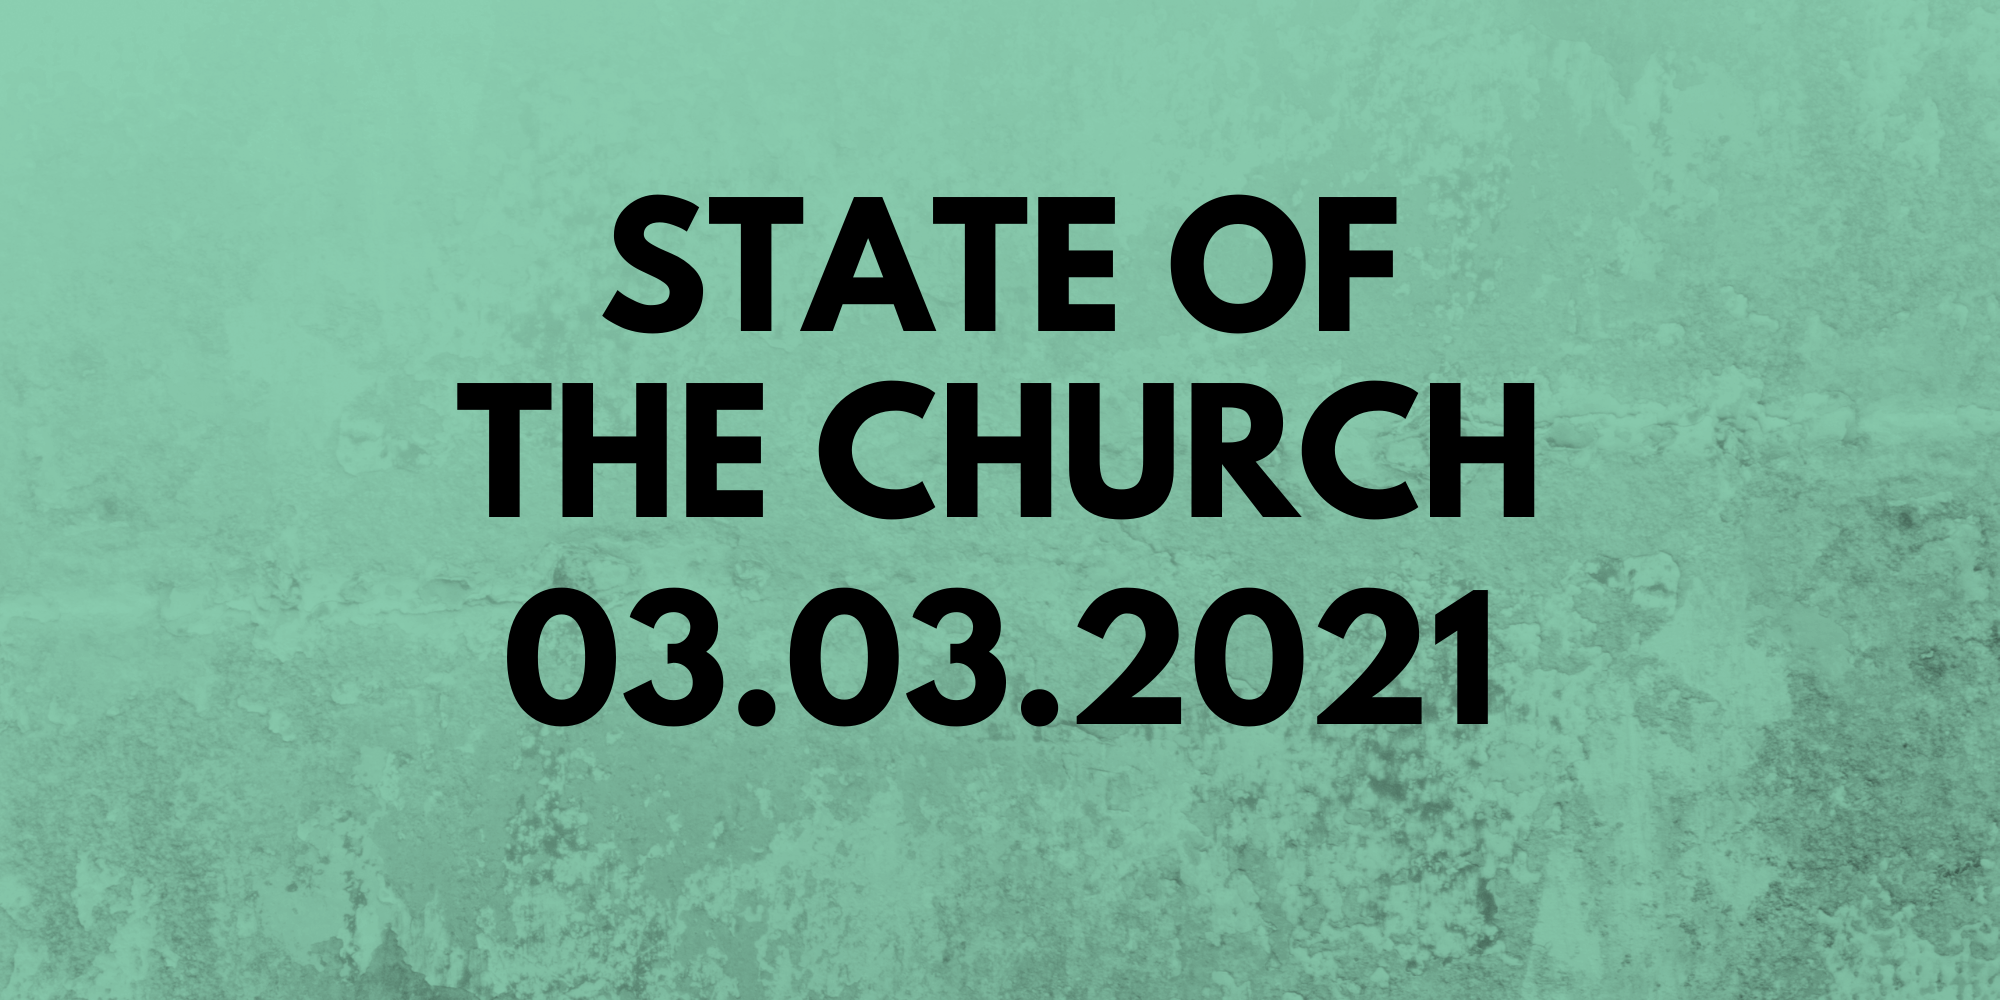 State of the Church - 03.03.2020